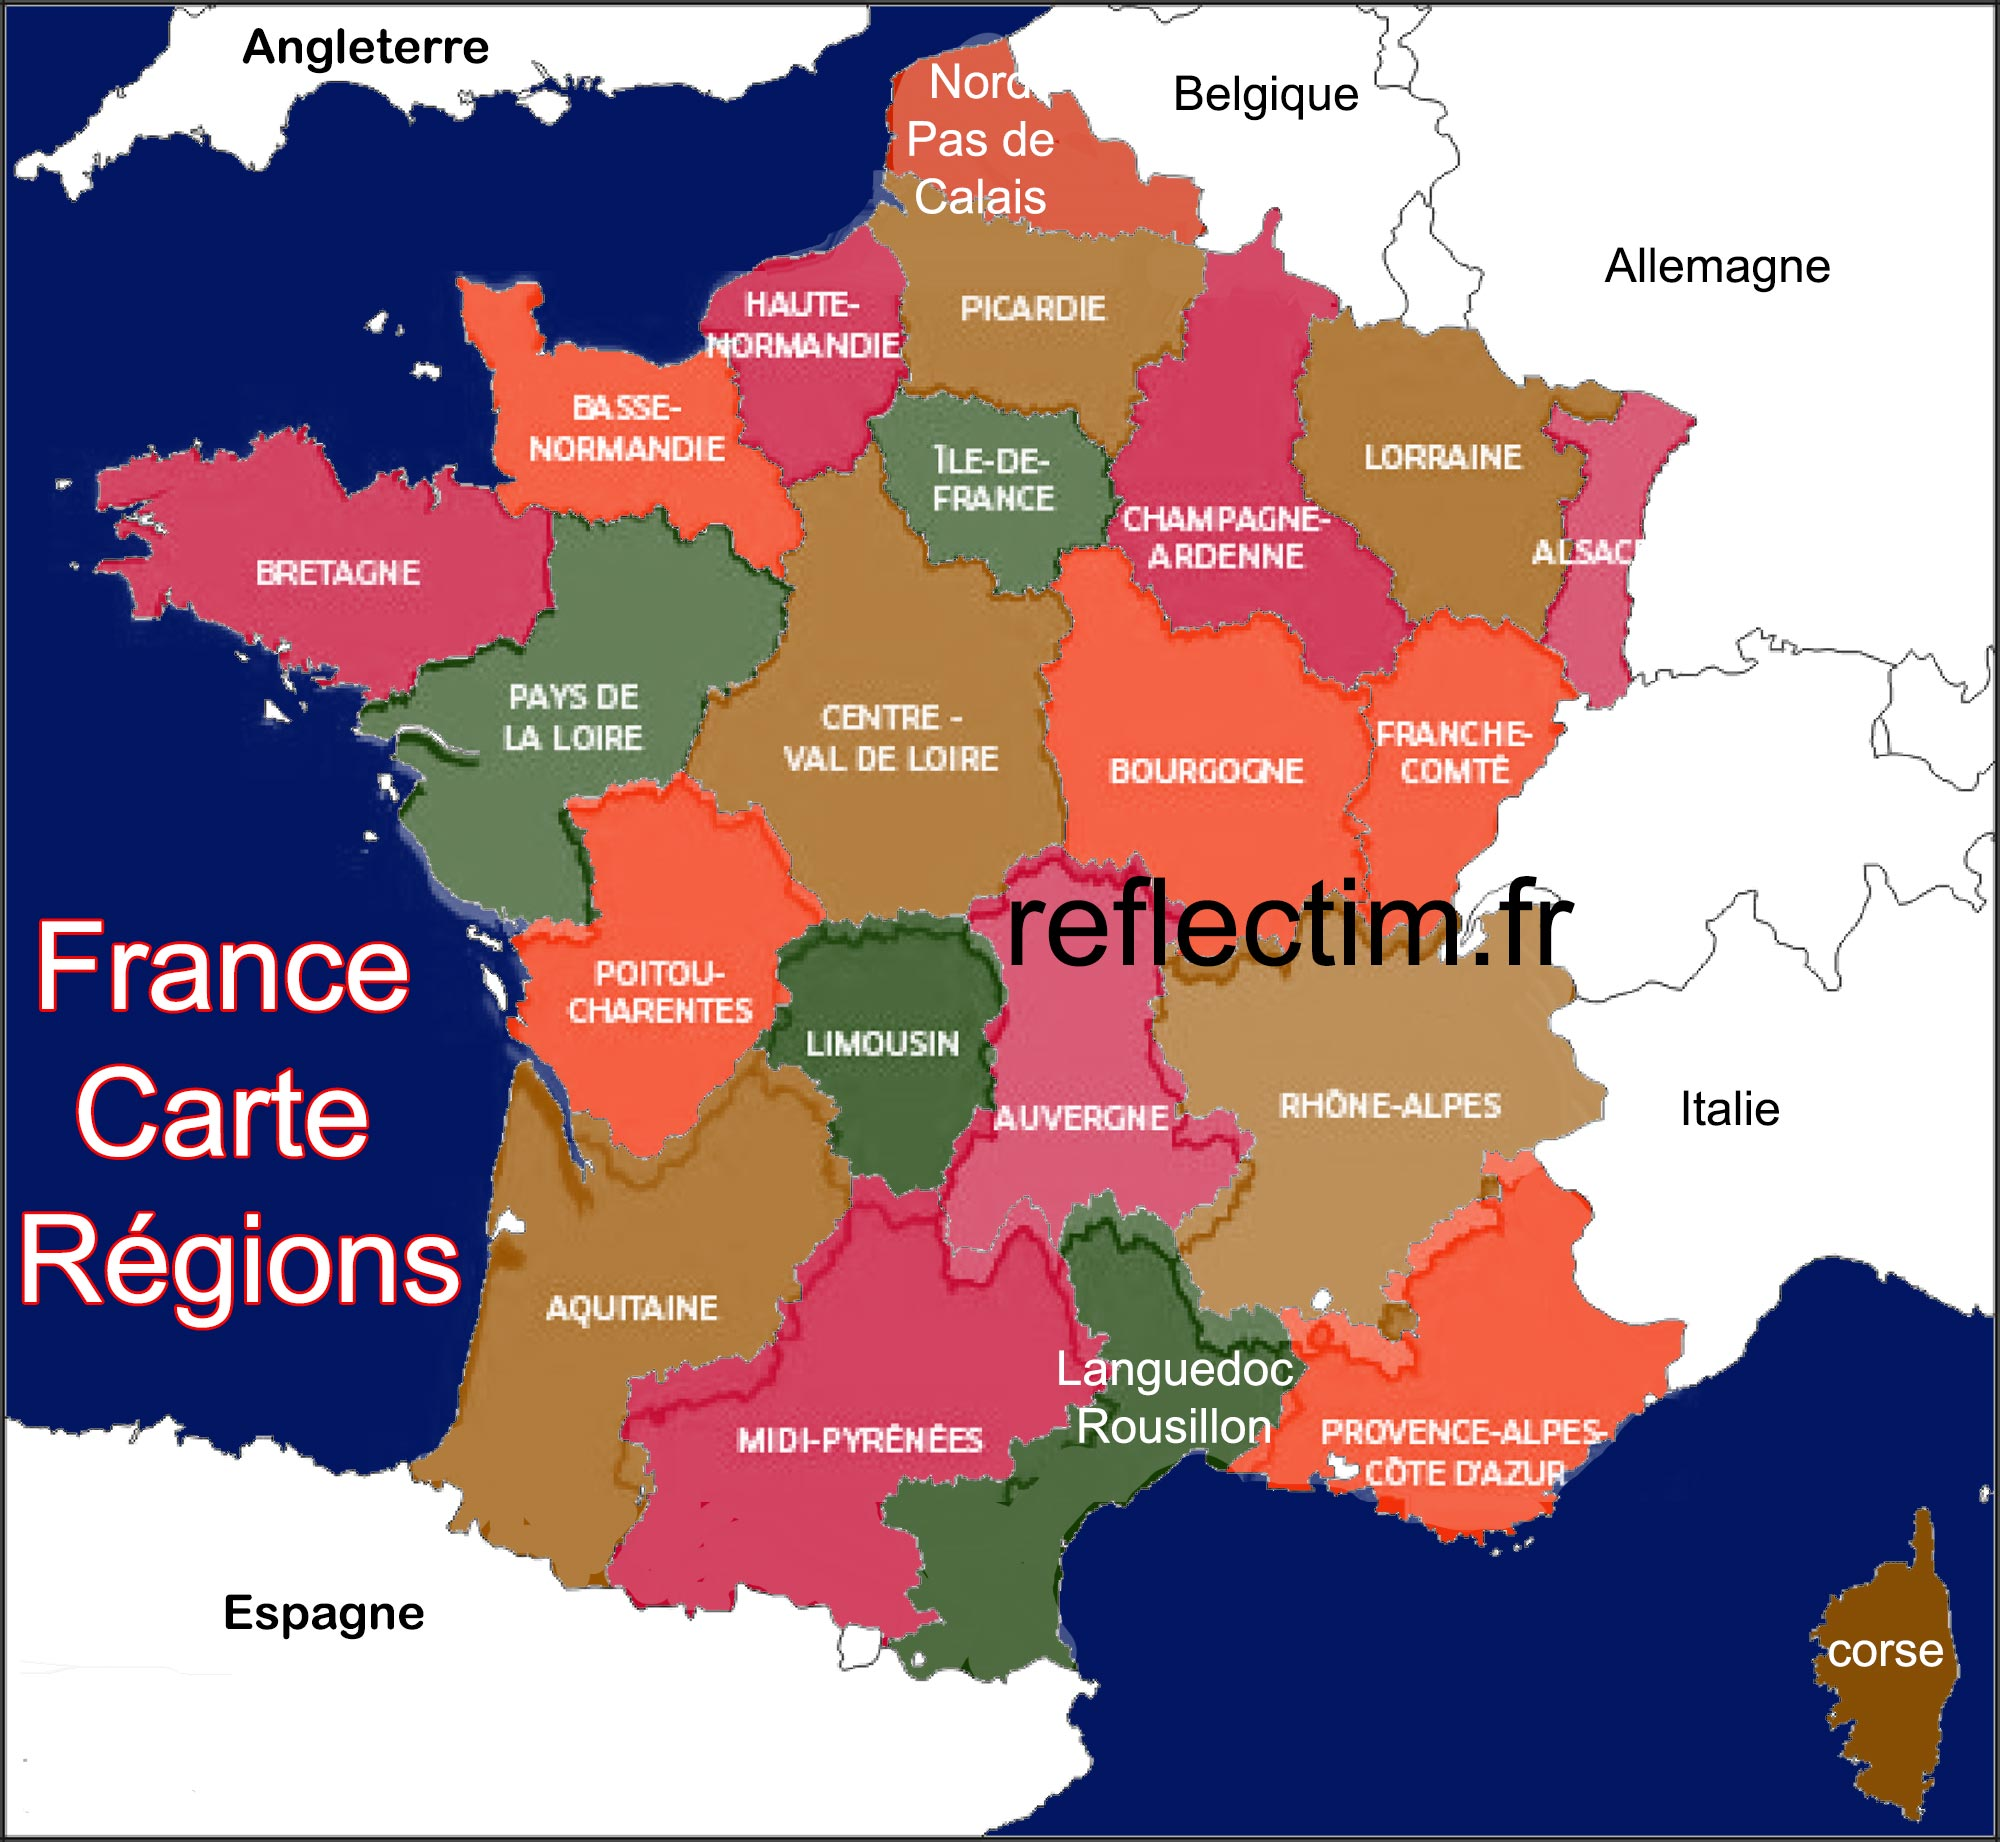 France - Carte - Région